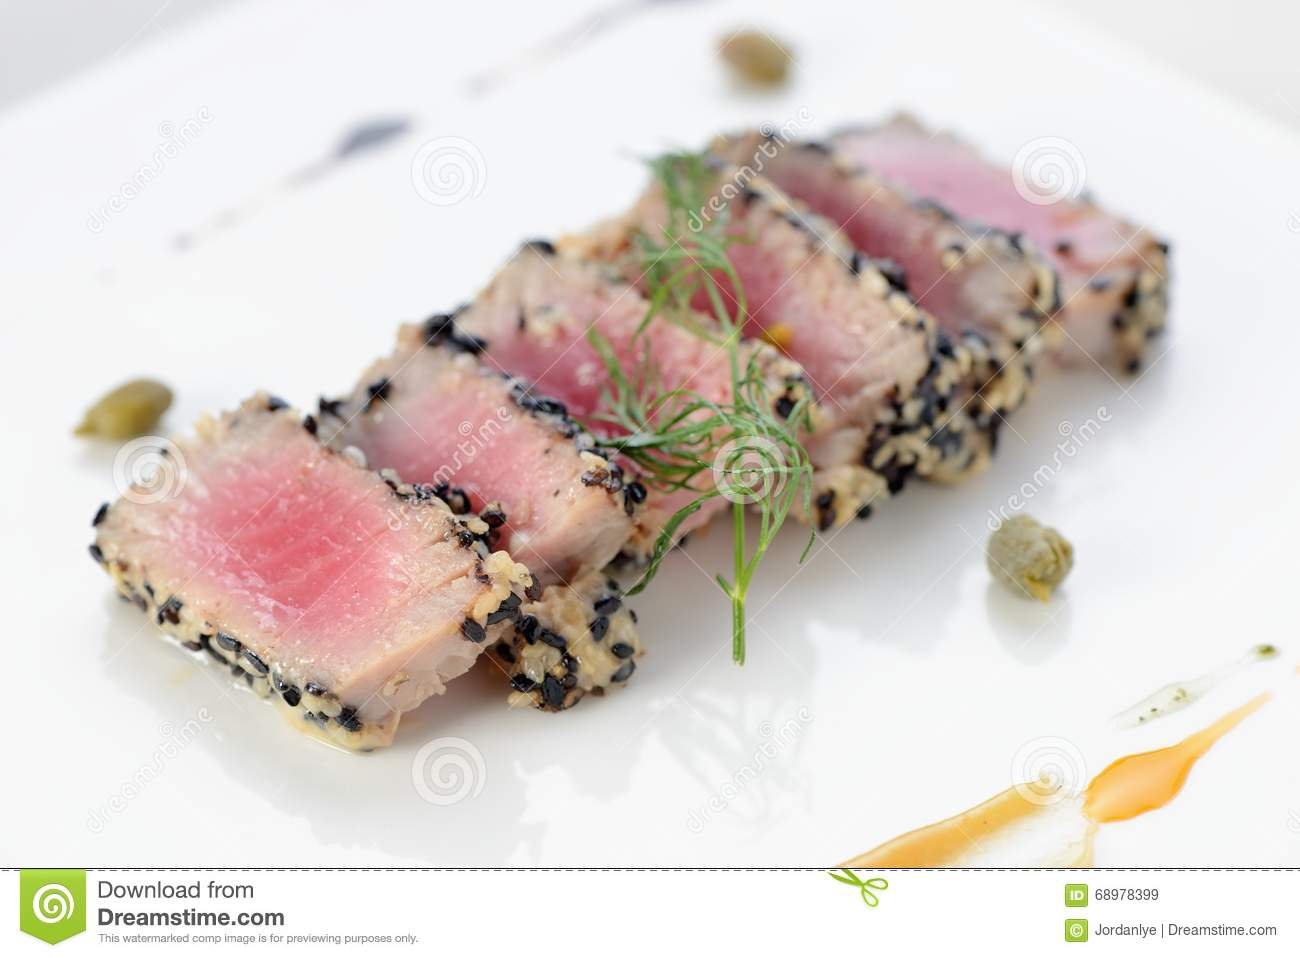 Ahi Tuna Seared